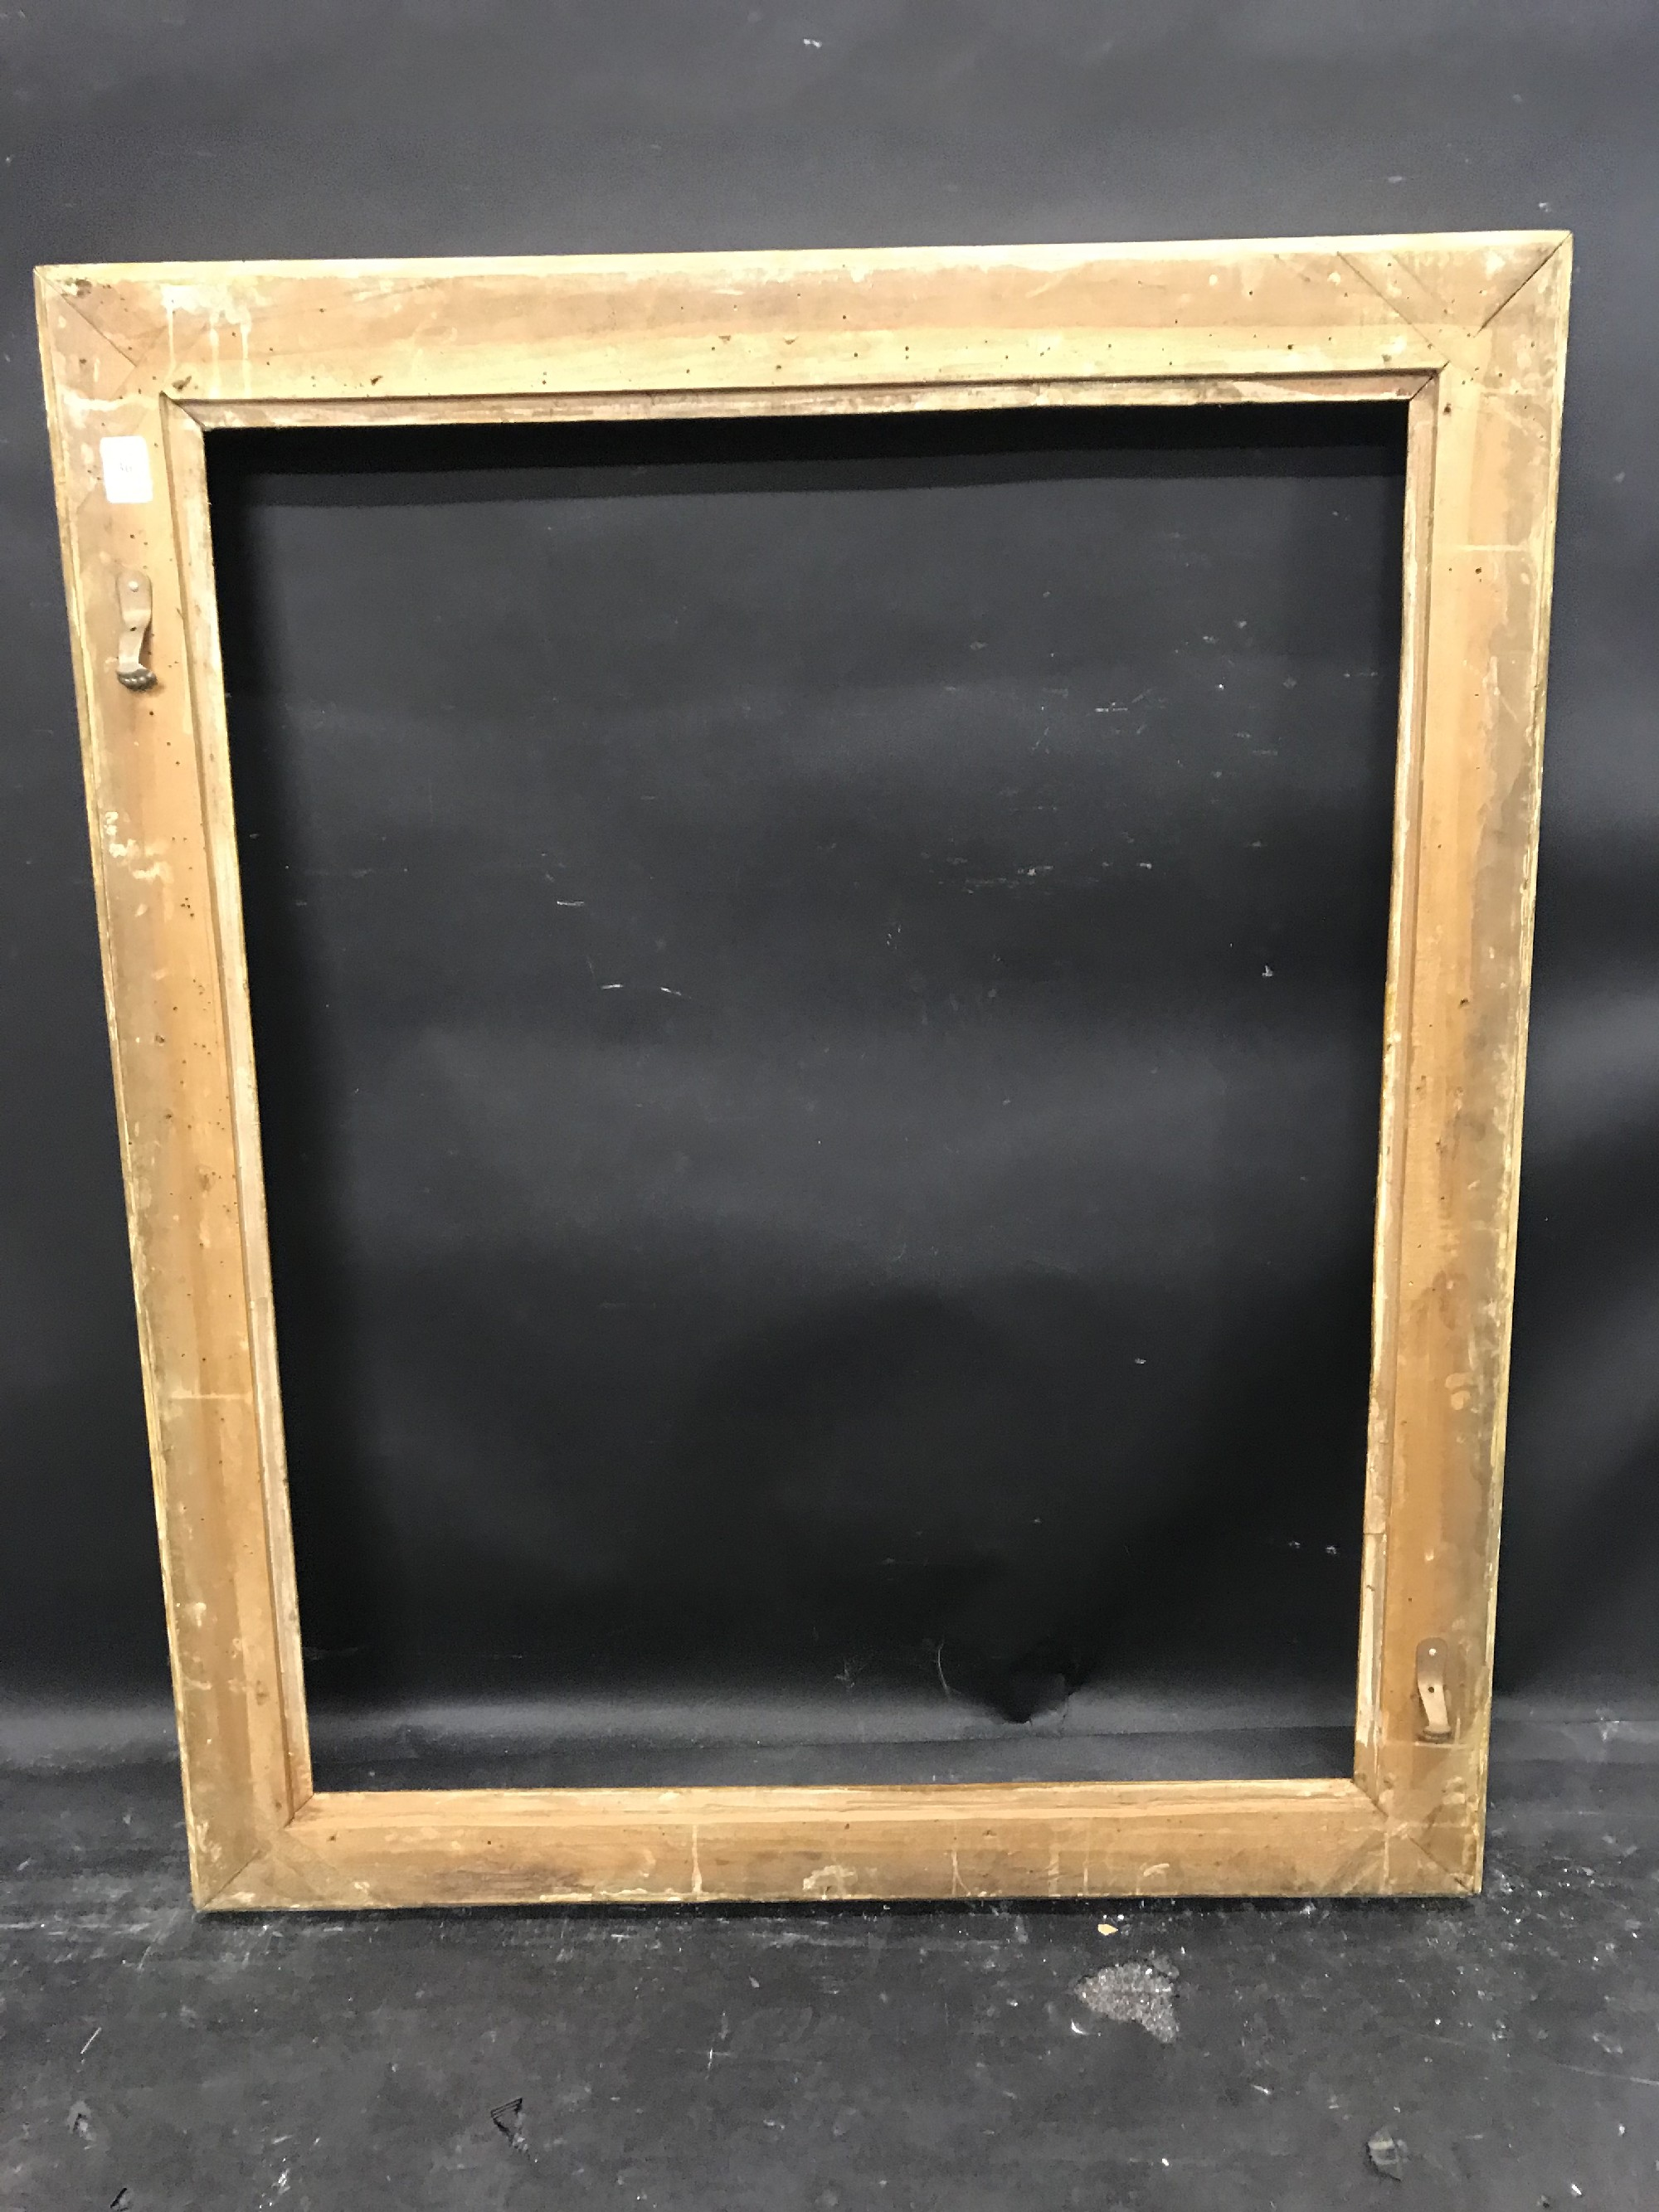 "Lot 36 - 19th Century French School. An Empire Style Frame, 31.5"" x 25.25""."